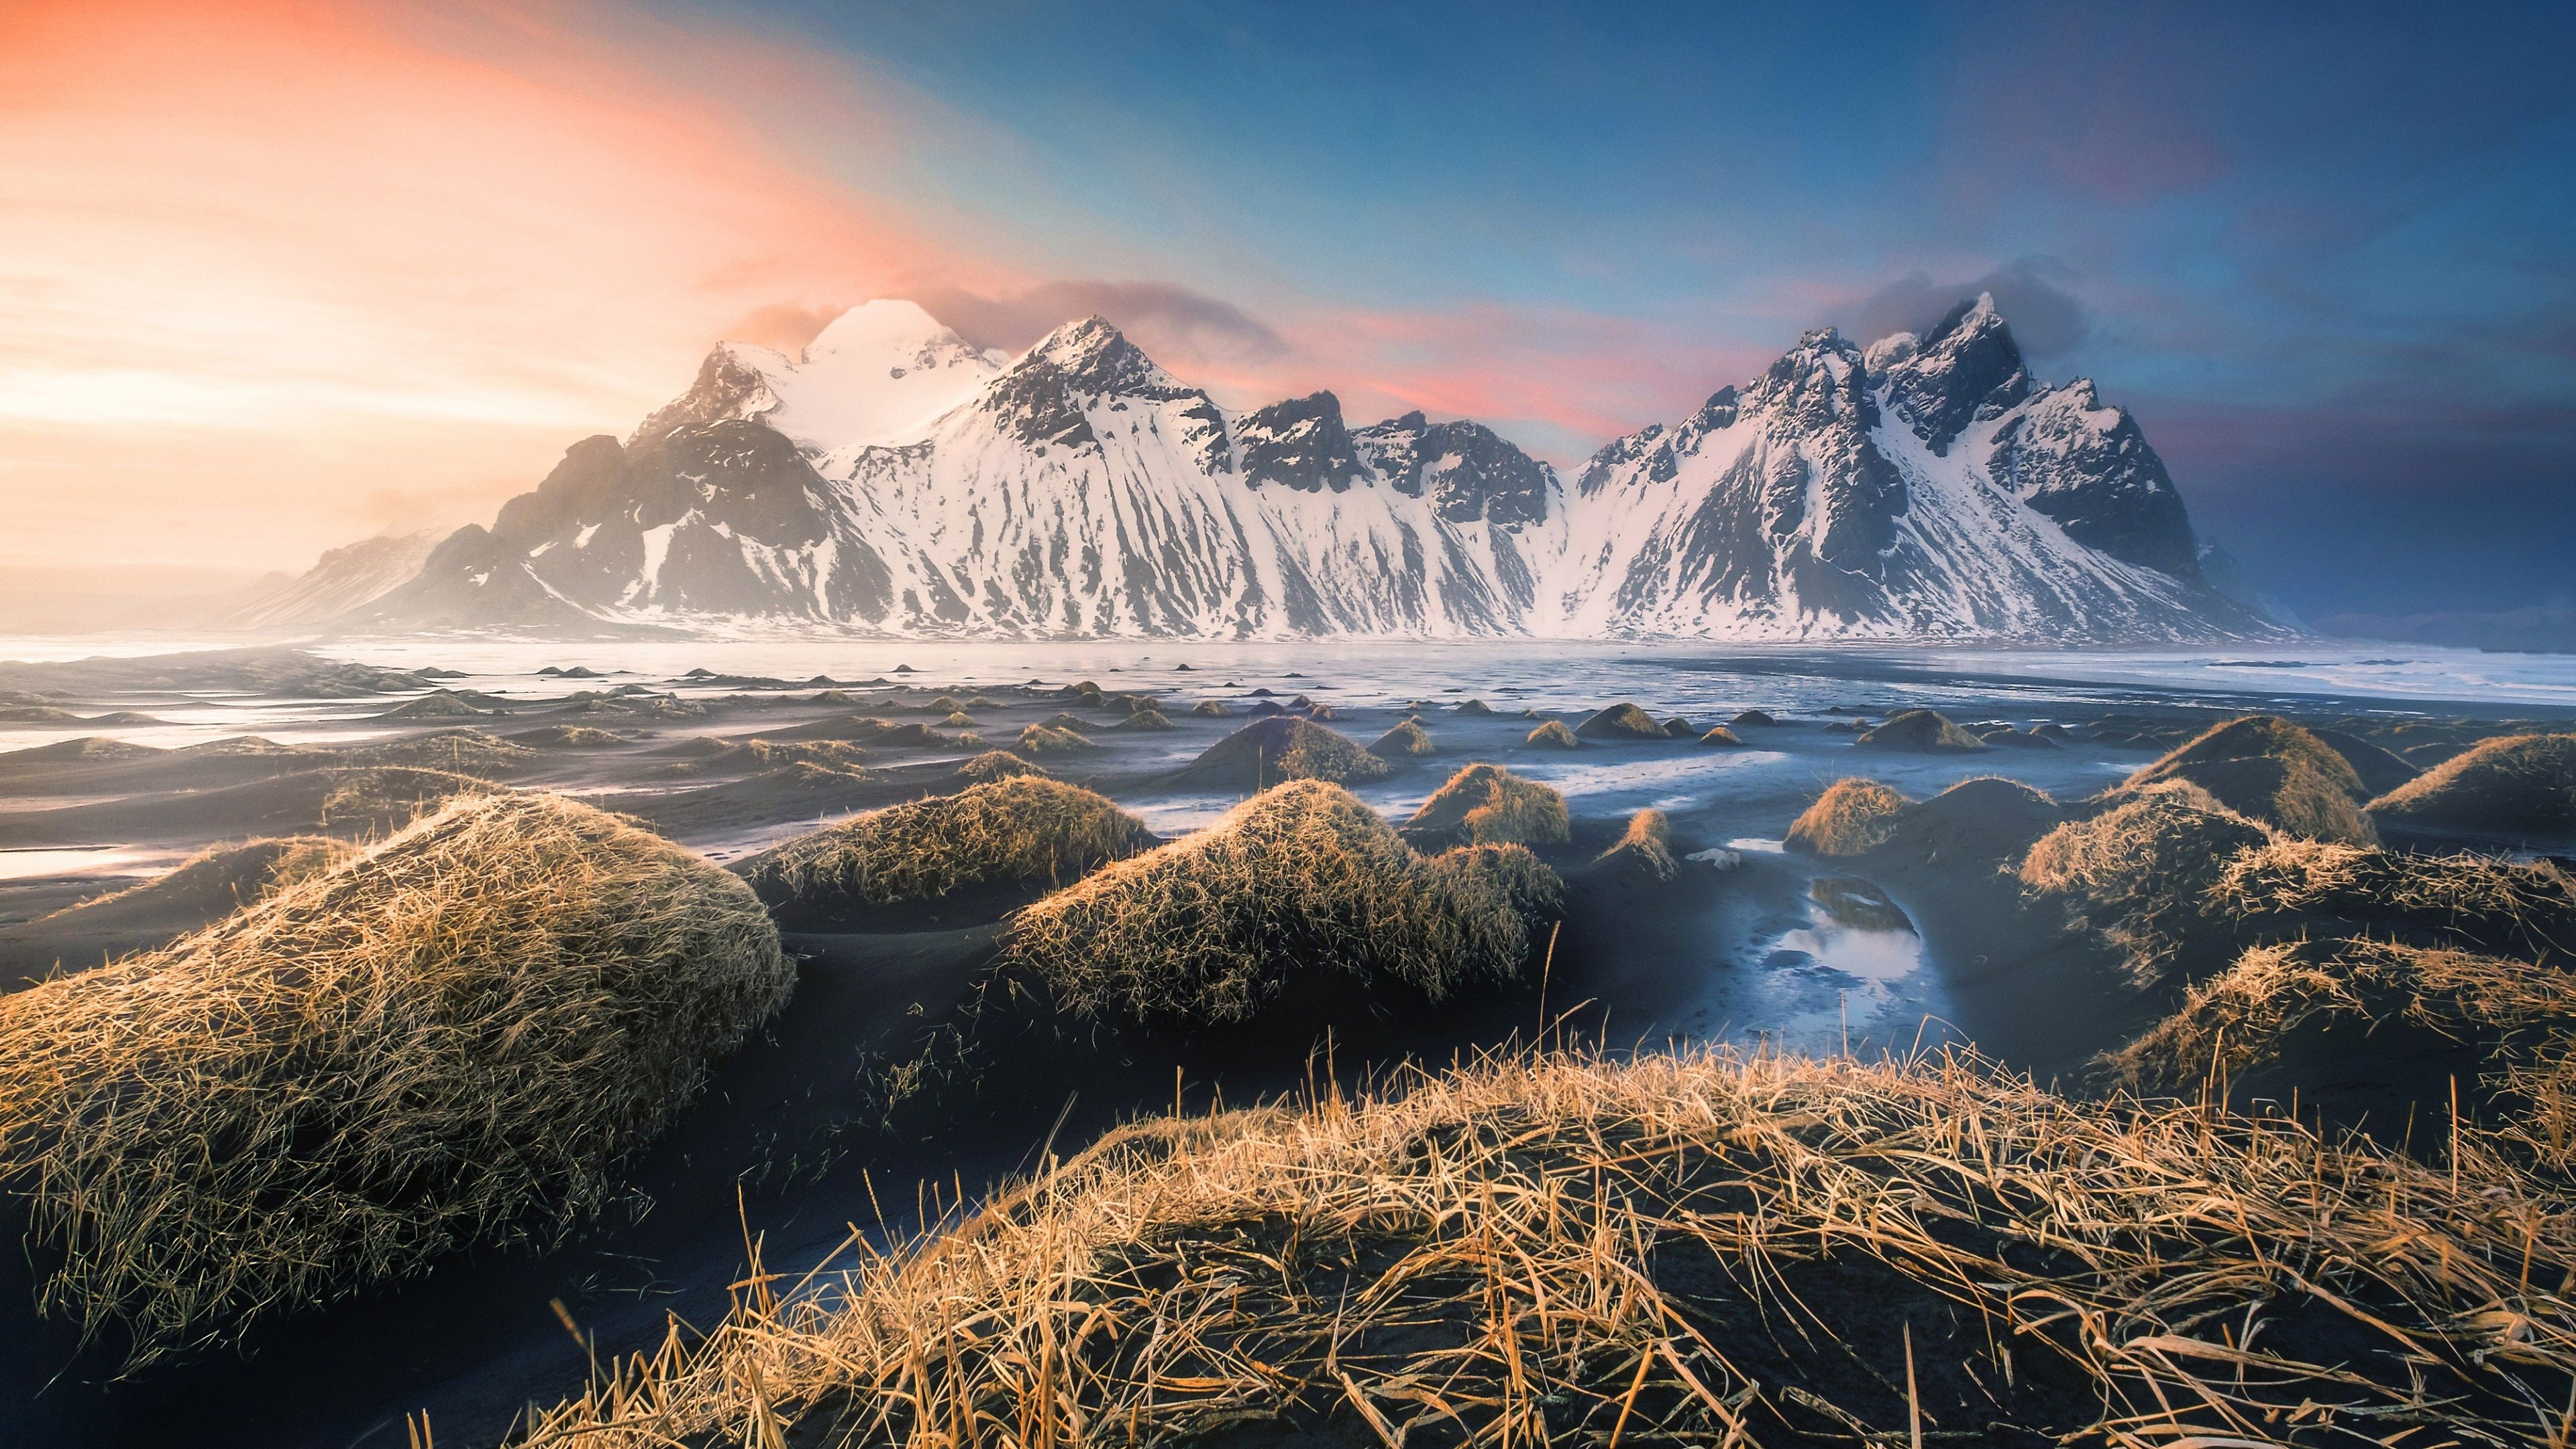 3840x2160 Mountains 4k Free High Resolution Desktop Wallpaper In 2020 Landscape Wallpaper Nature Wallpaper Landscape